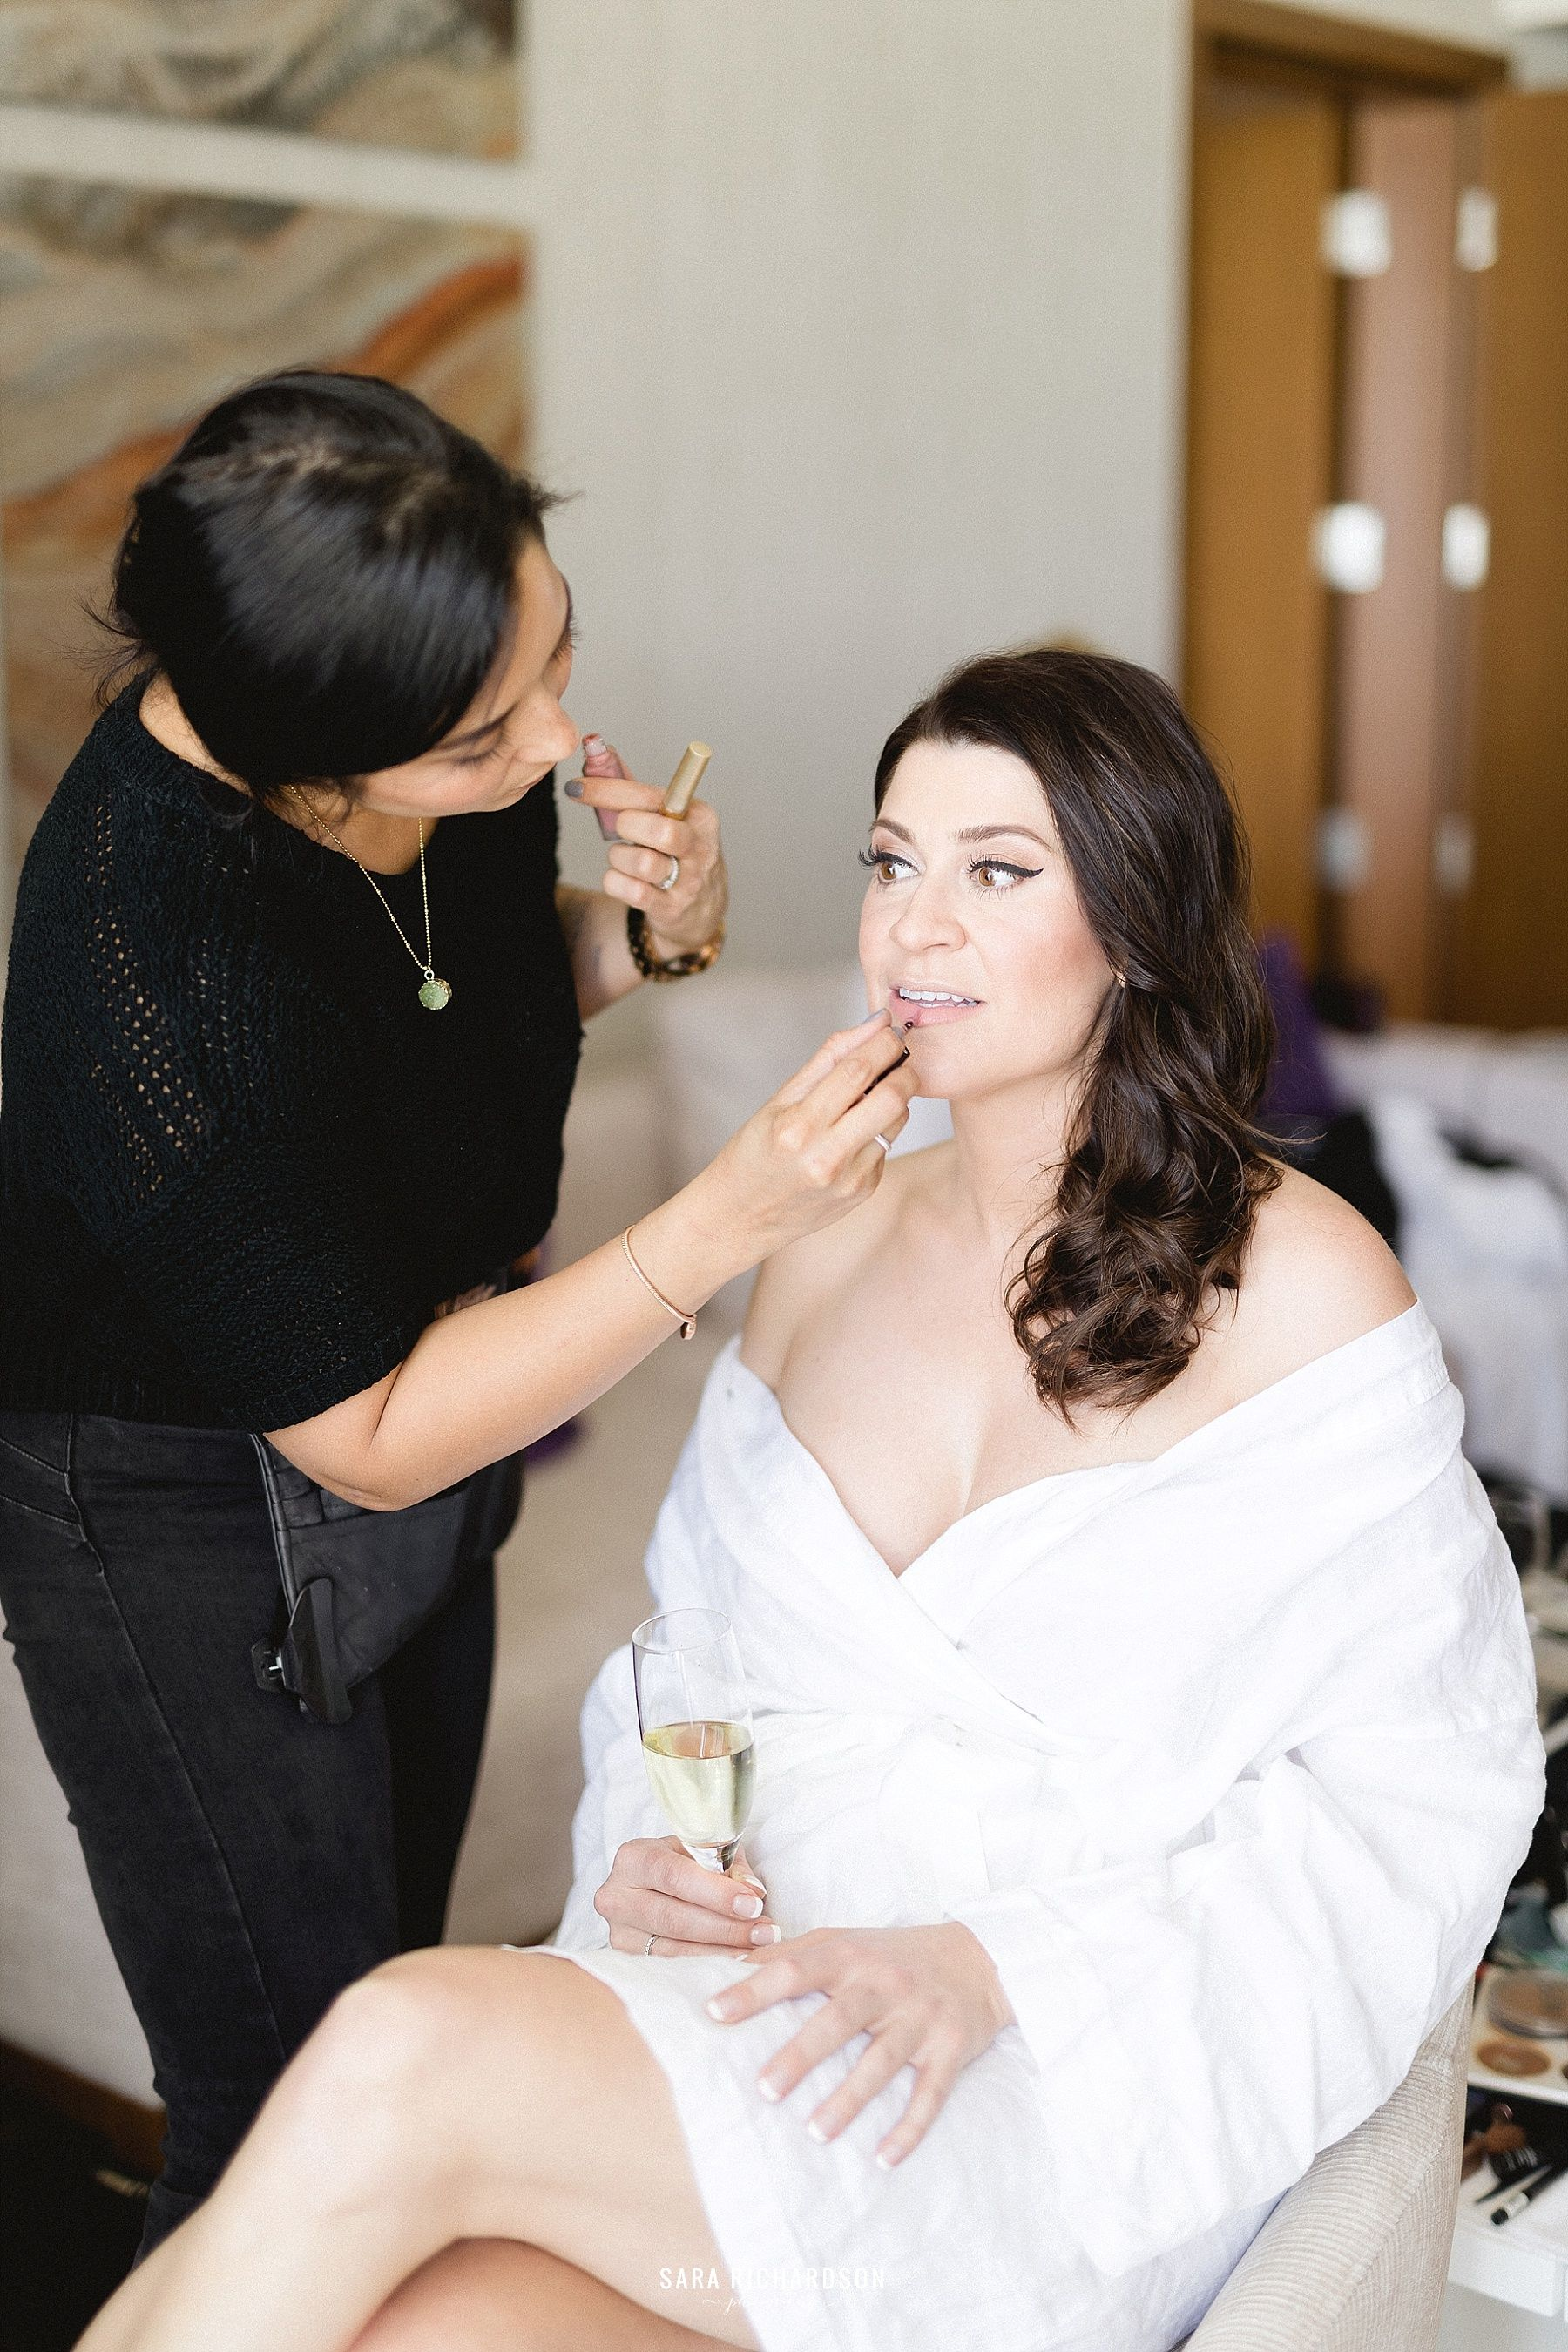 Bri Berliner making sure the Bride looked flawless before her big Ceremony. She looked amazing. The Wedding took place at LeBlanc in Los Cabos Mexico. This is where Sara and Eric tied the knot on their Big Day.